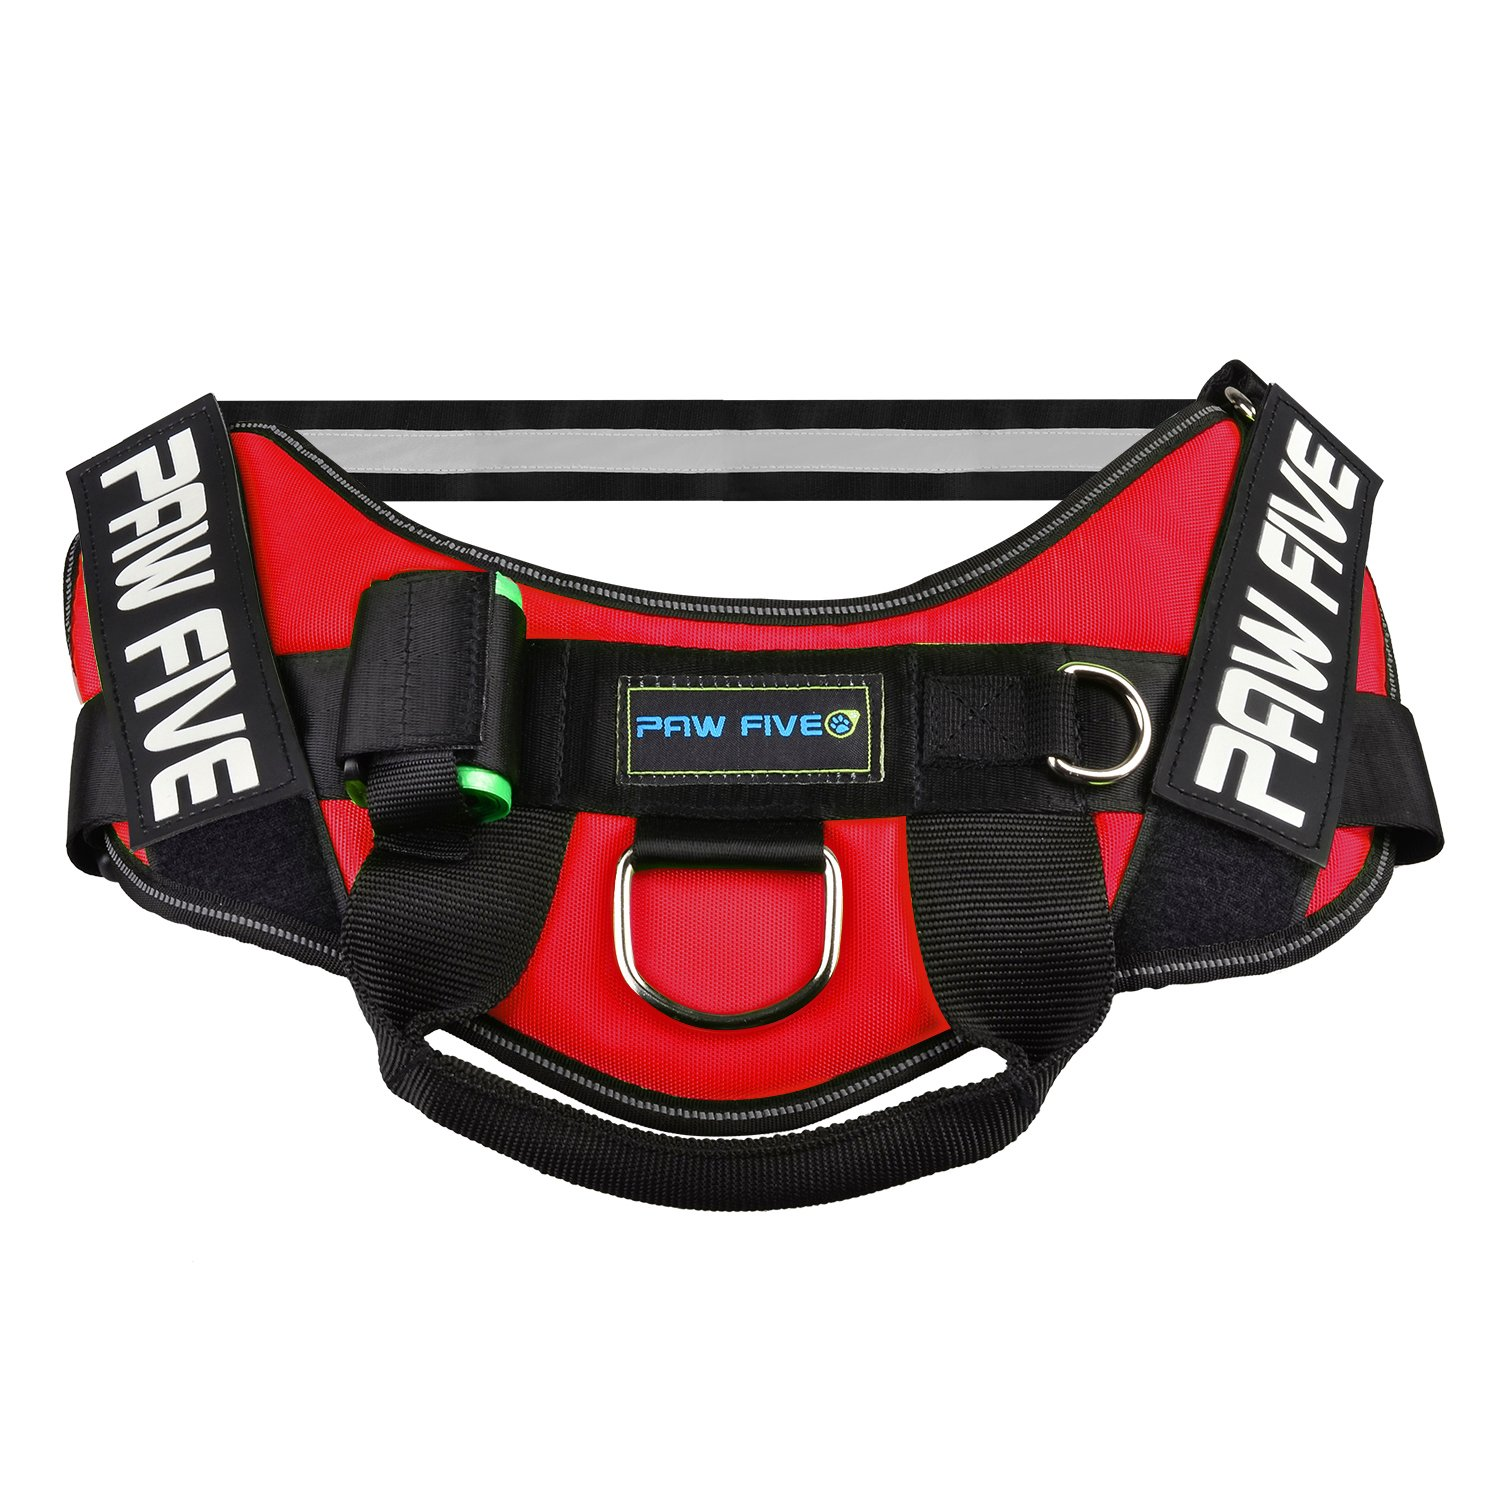 Paw Five CORE-1 Reflective Dog Harness with Built-in Waste Bag Dispenser Adjustable Padded No-Pull Easy Walk Control for Medium and Large Dogs, Check Sizing Chart Before Ordering (Medium, Lava Red) by Paw Five (Image #3)